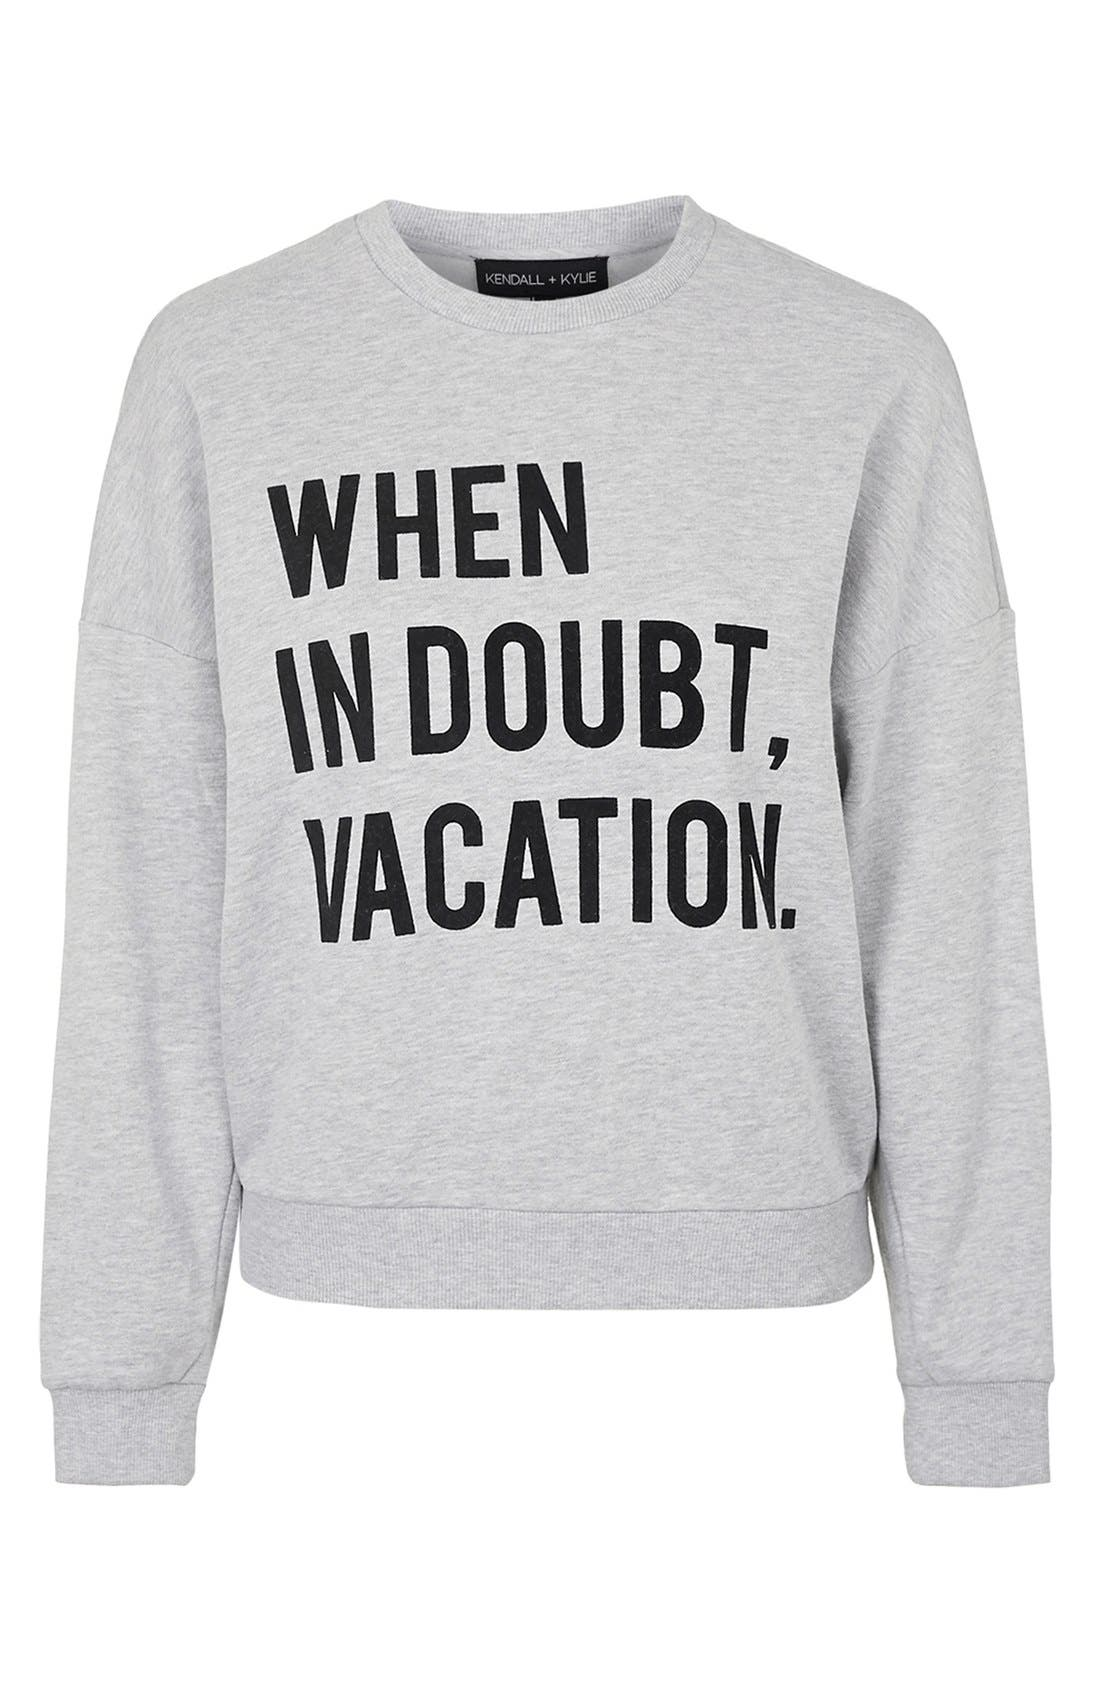 Alternate Image 4  - KENDALL + KYLIE at Topshop 'When in Doubt, Vacation' Crewneck Pullover